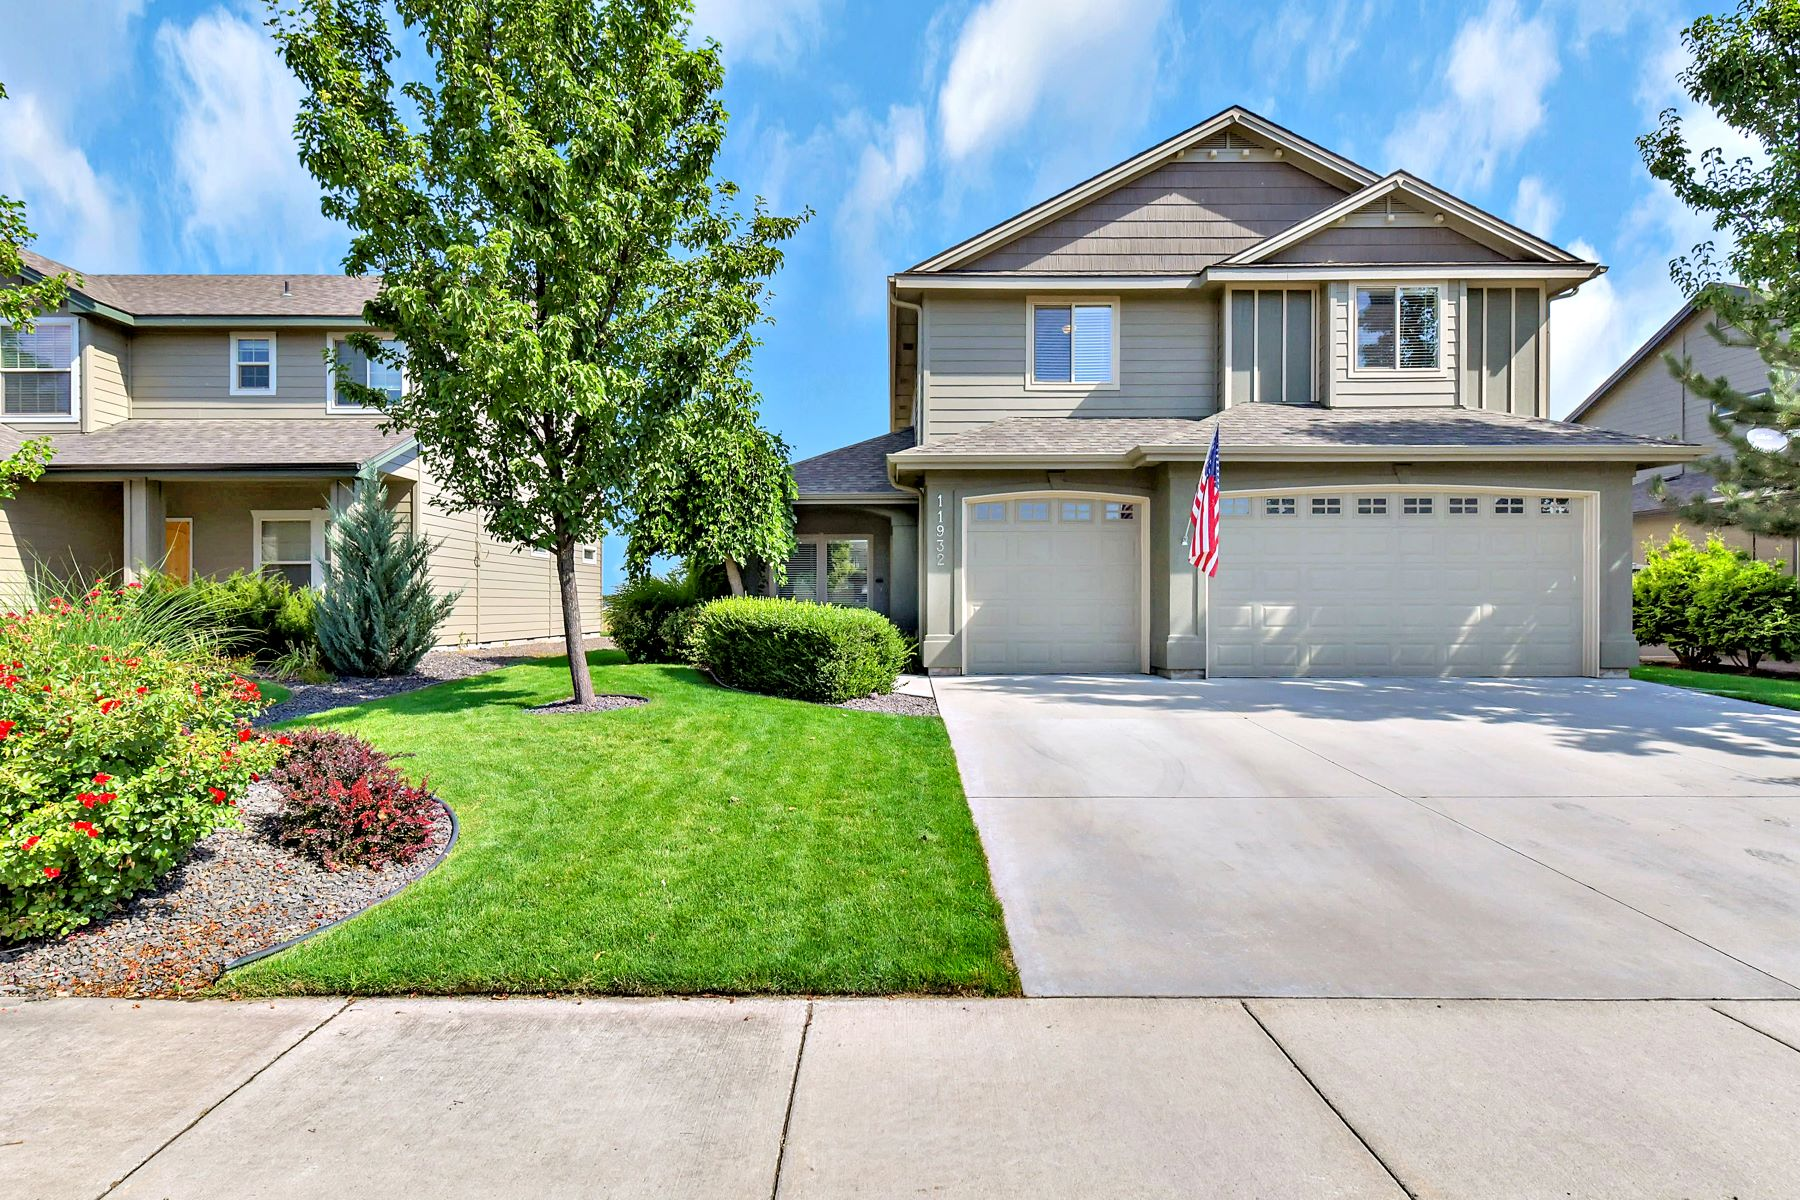 Single Family Homes for Sale at 11932 Goldfinch St, Caldwell 11932 Goldfinch St Caldwell, Idaho 83605 United States